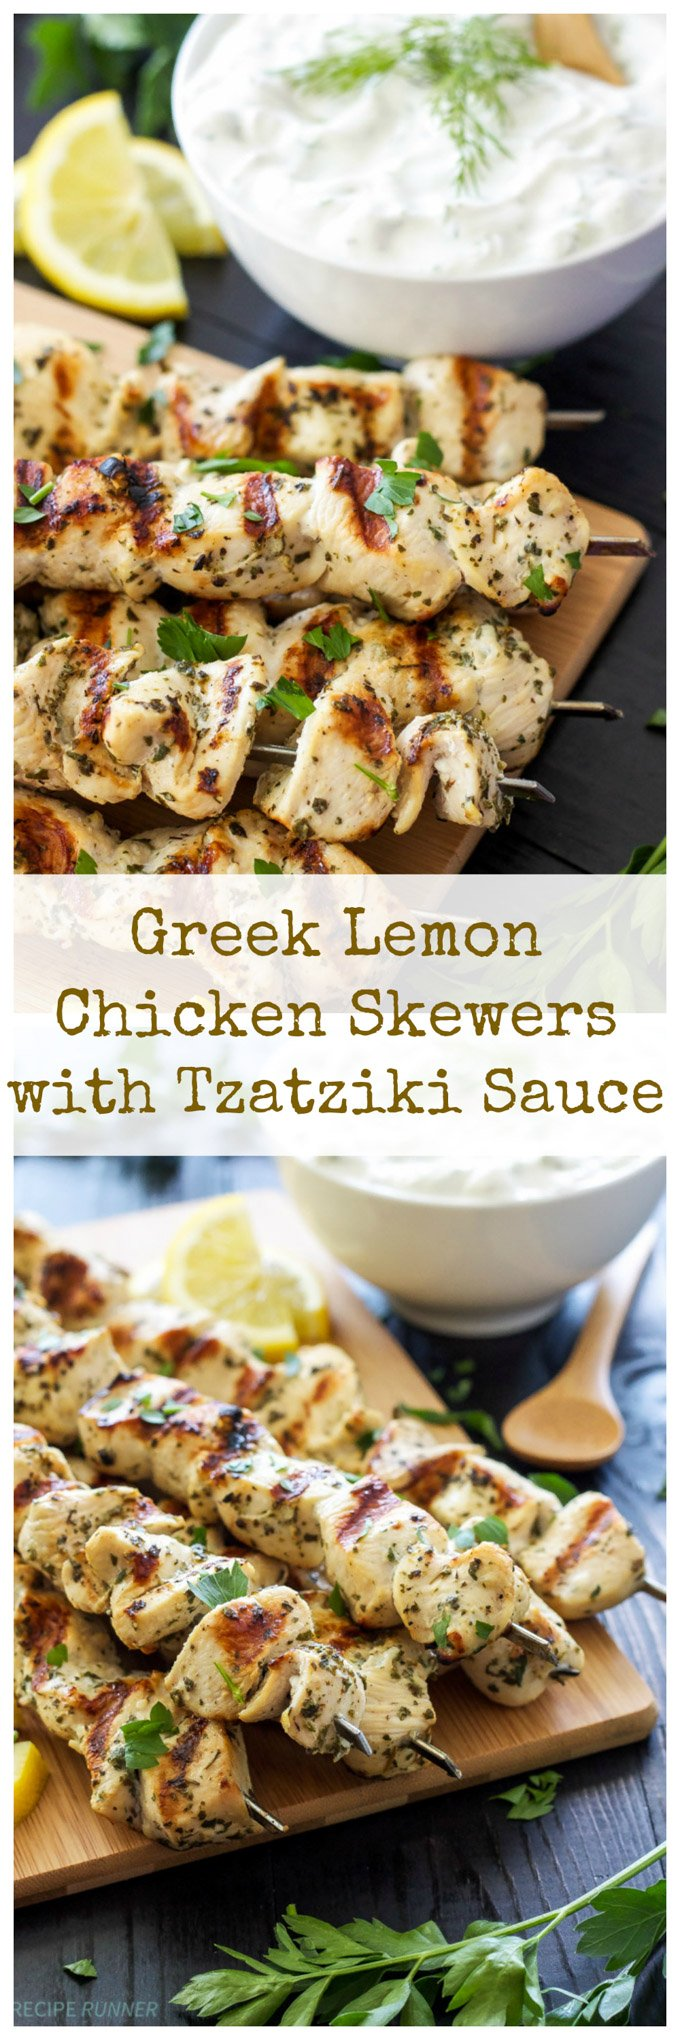 Greek Lemon Chicken Skewers with Tzatziki Sauce | Delicious and healthy Greek chicken skewers with a sauce you'll want to slather on everything! #greekchicken #skewers #tzatziki #healthydinner #glutenfree